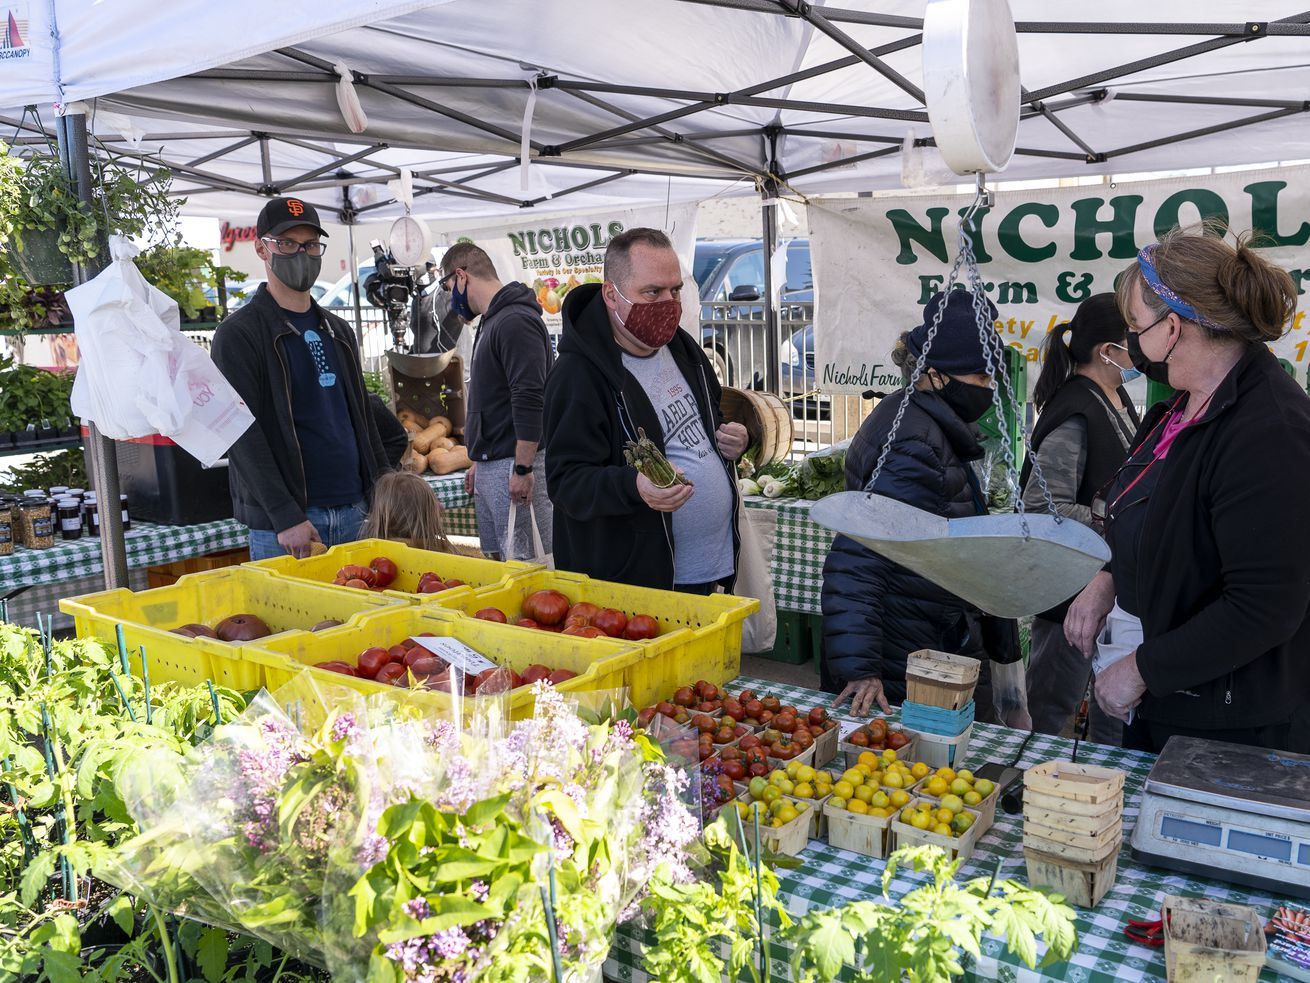 People grab produce and wait to check out at the Nichols Farm and Orchard stall at the Andersonville Farmers Market, Wednesday, May 12, 2021.